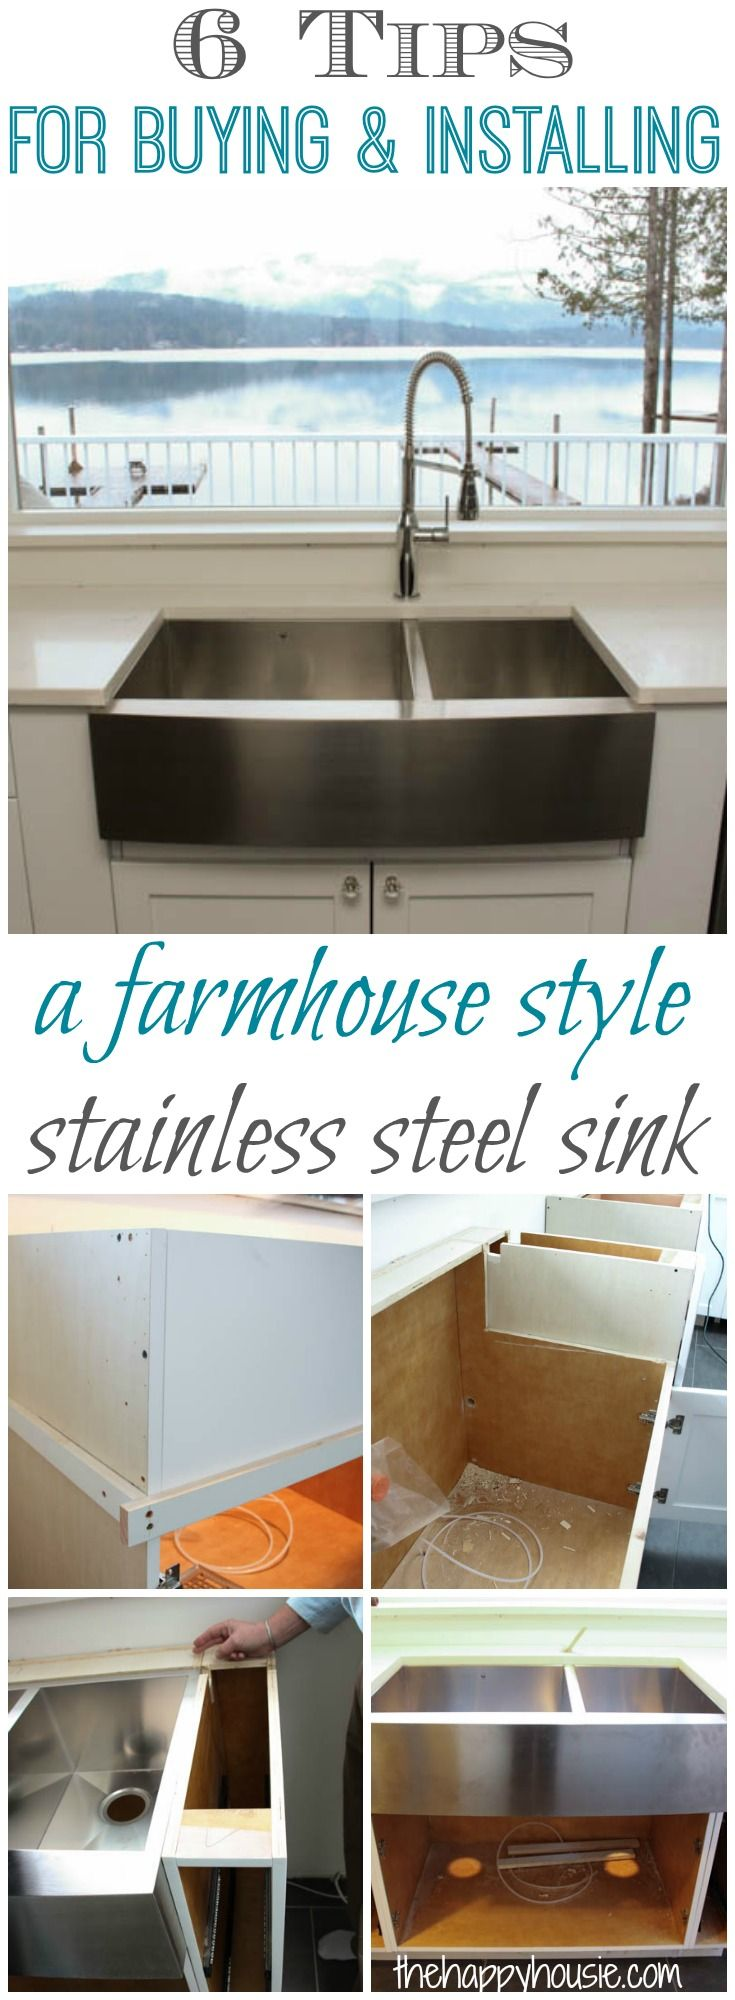 double kitchen sink kitchen sink styles Things to Know about Buying Installing a Stainless Steel Farmhouse Style Sink